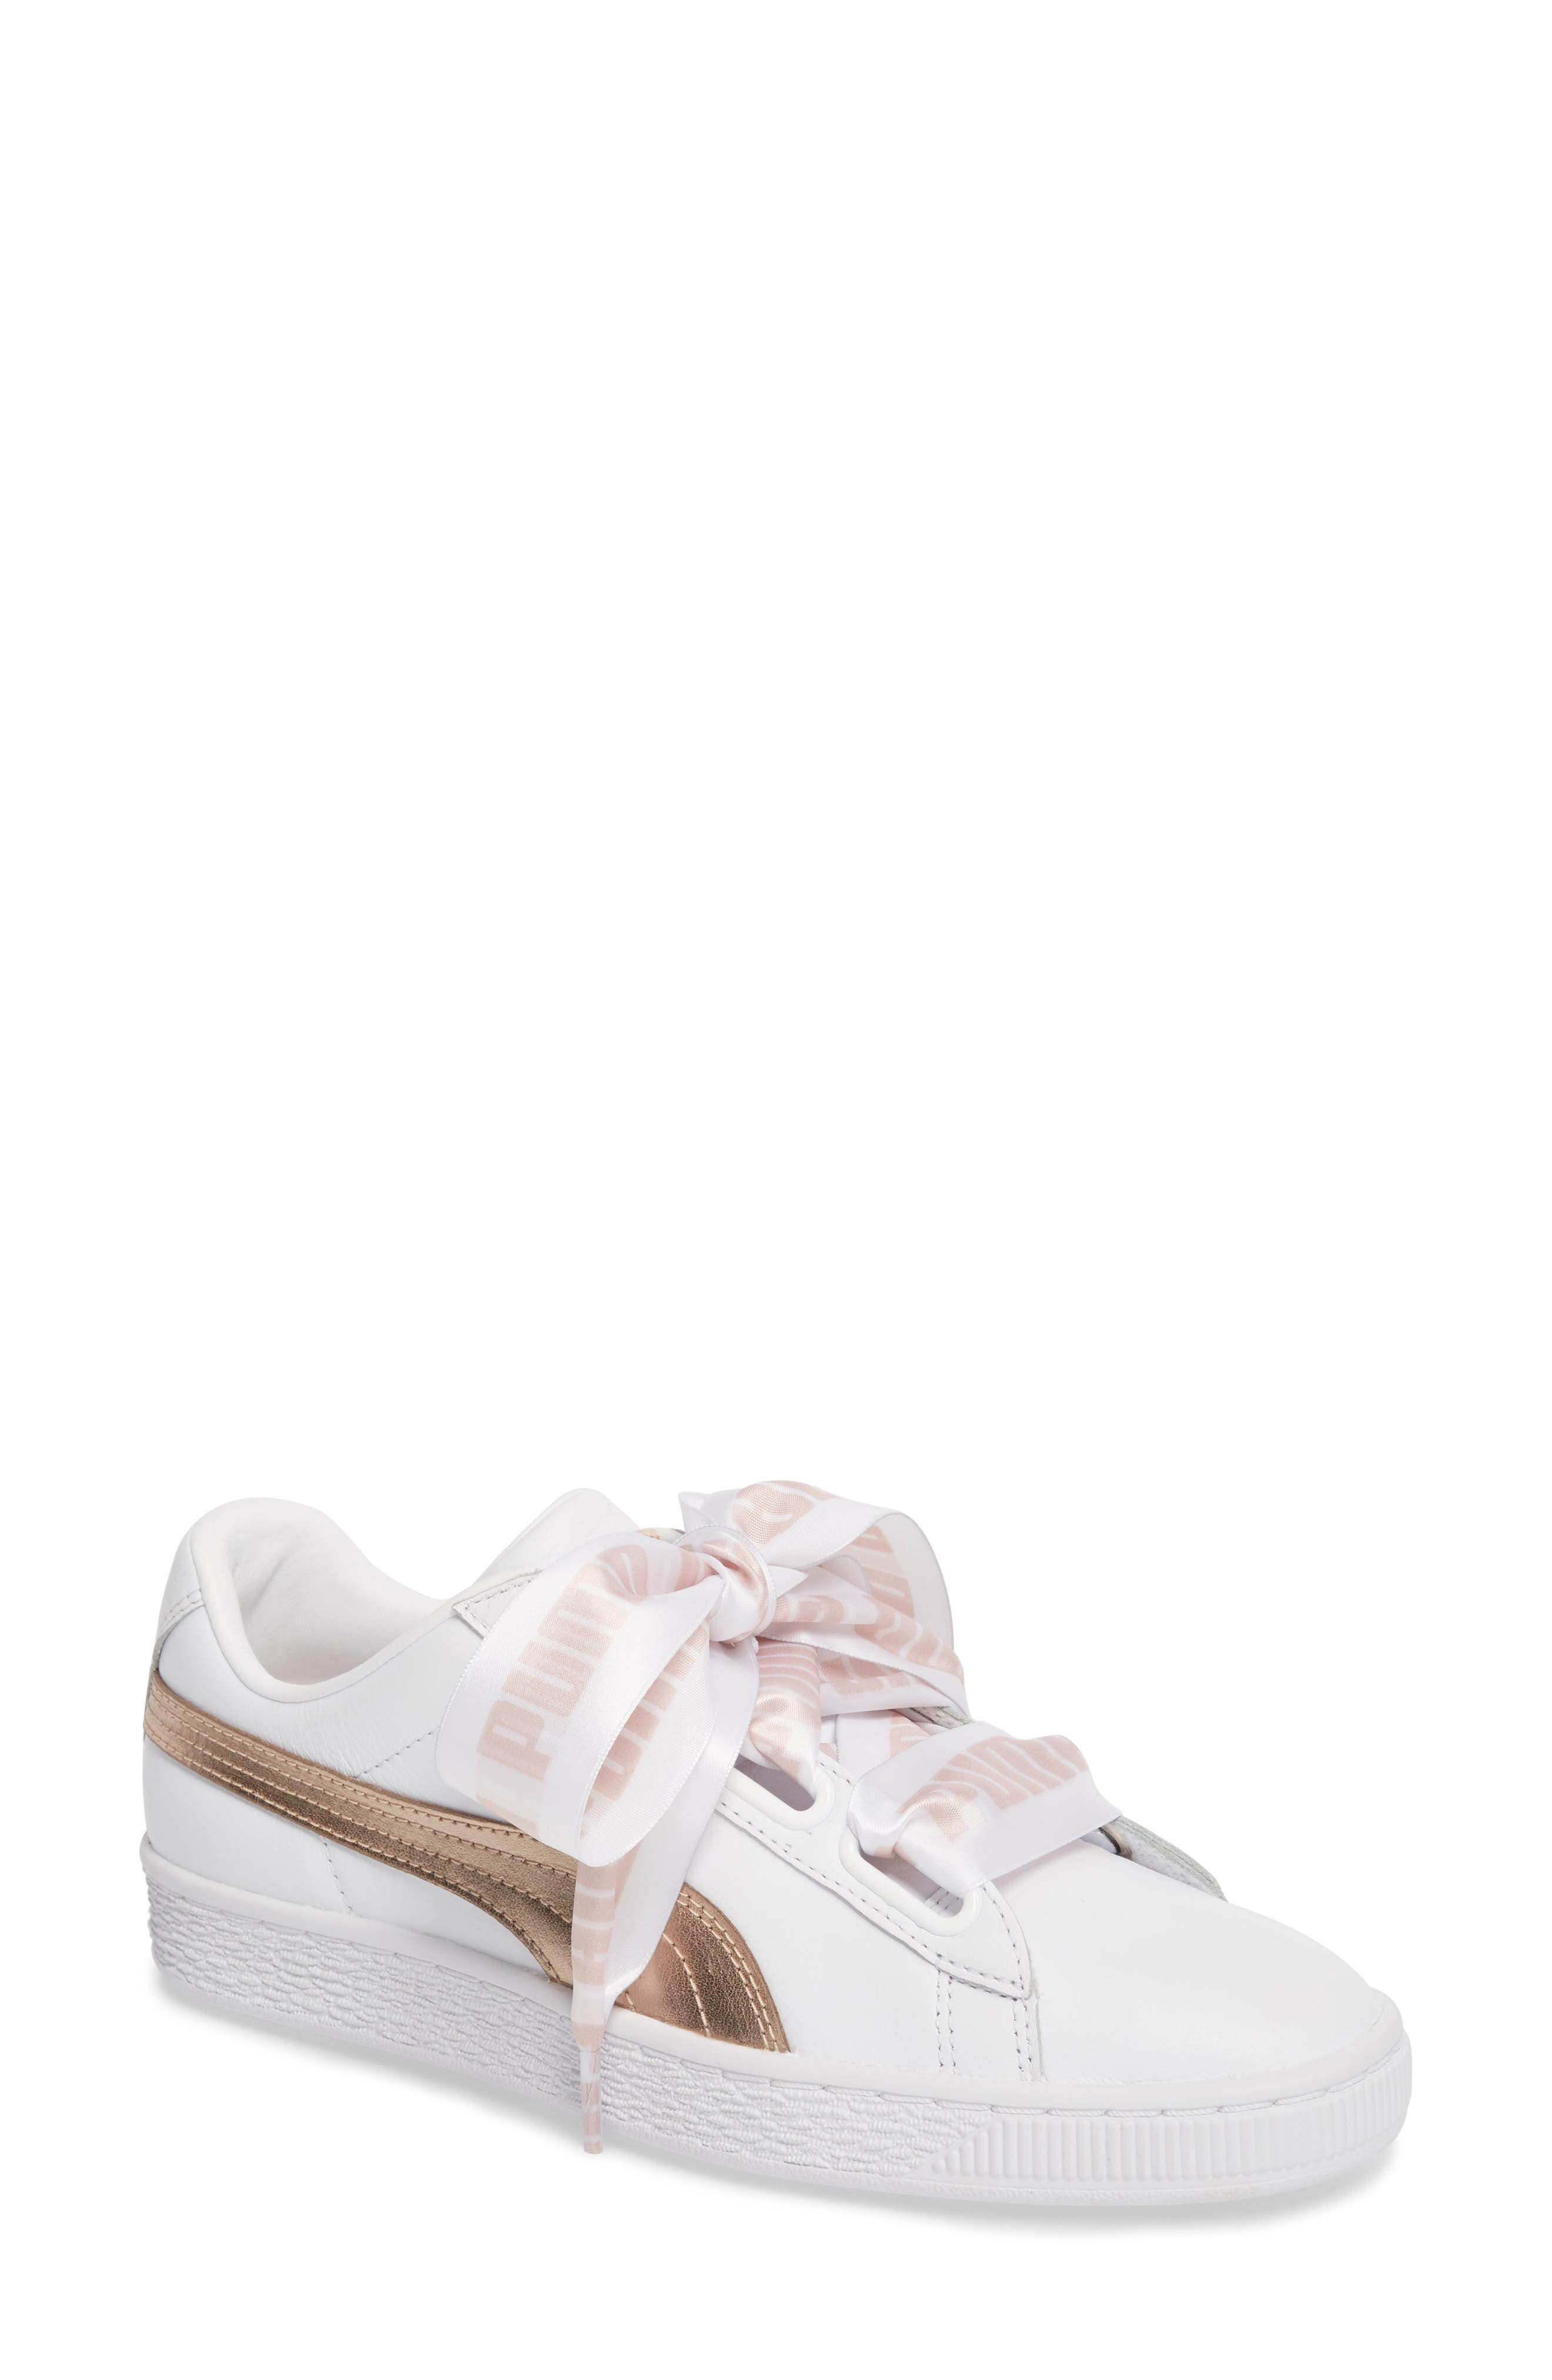 Basket Heart Sneaker,                             Main thumbnail 1, color,                             WHITE/ ROSE GOLD LEATHER